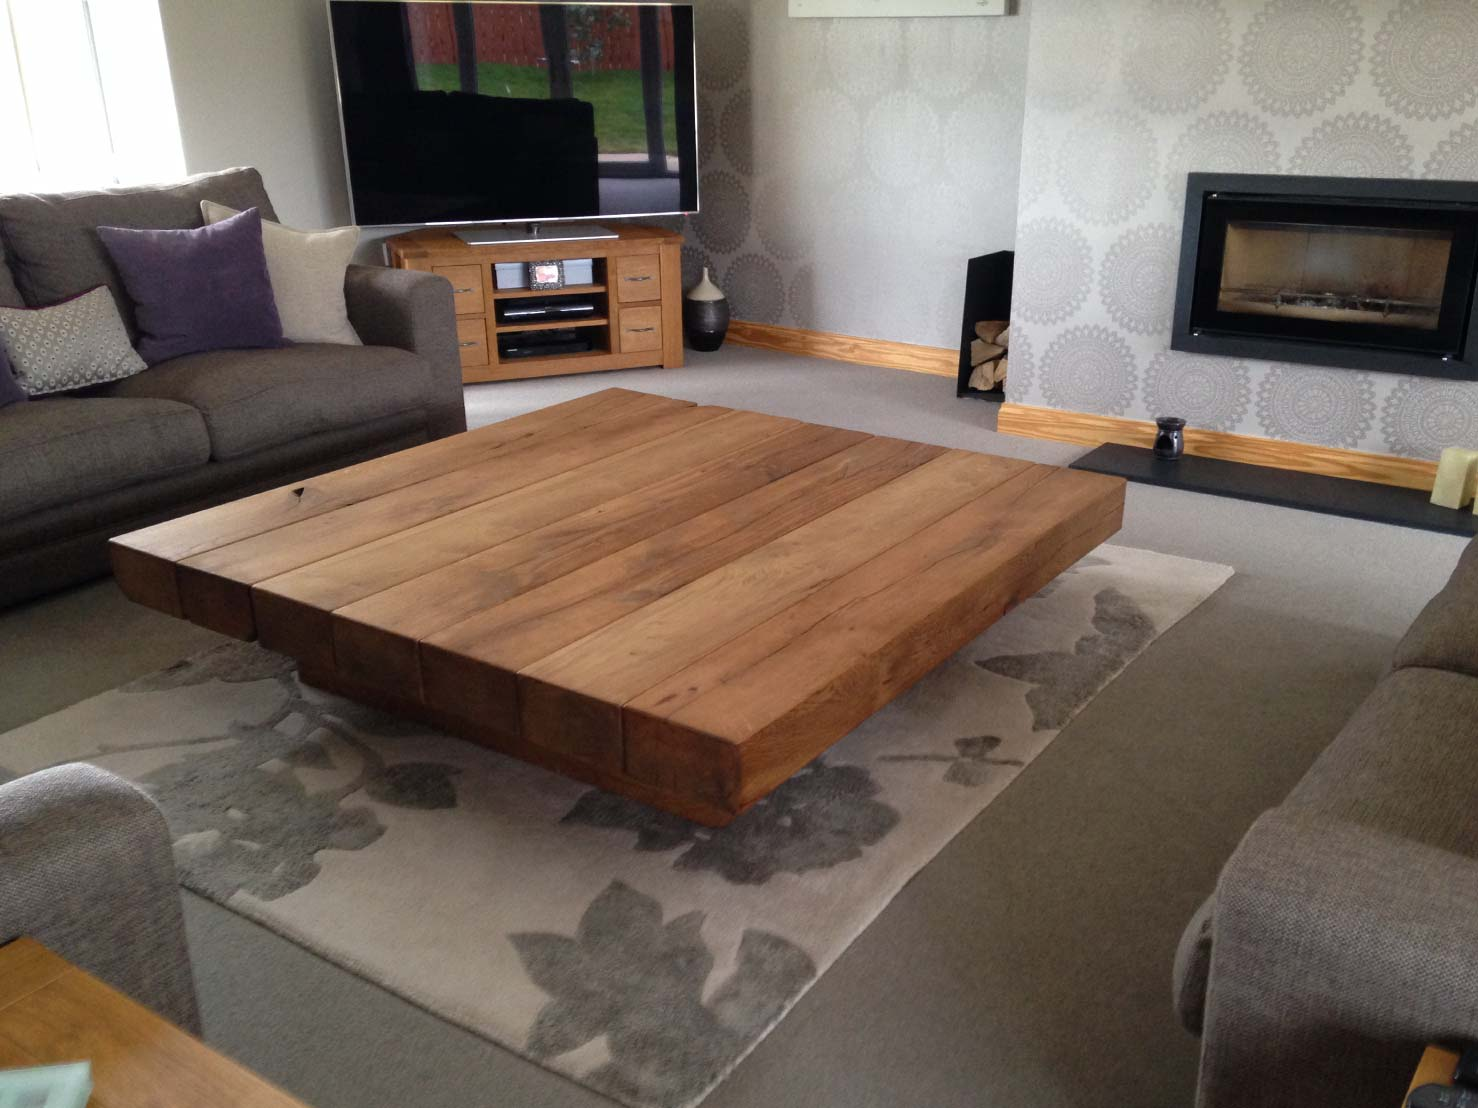 Coffee Table And Dining Table In One Project 201 Large Square Coffee Table Abacus Tables